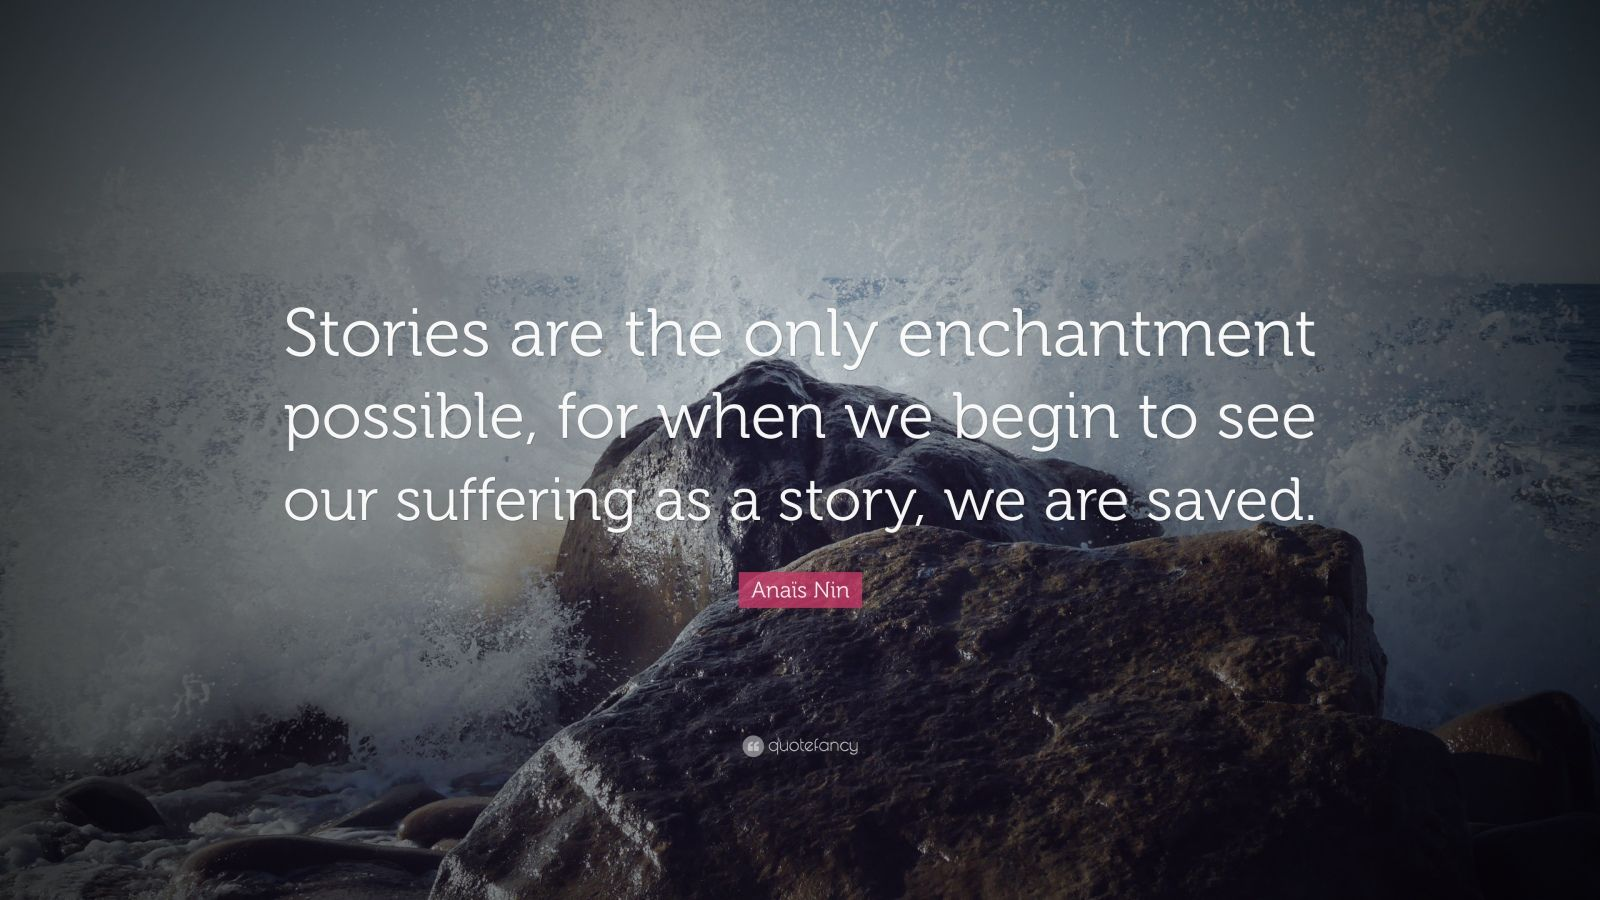 """Anaïs Nin Quote: """"Stories are the only enchantment possible, for when we begin to see our suffering as a story, we are saved."""""""